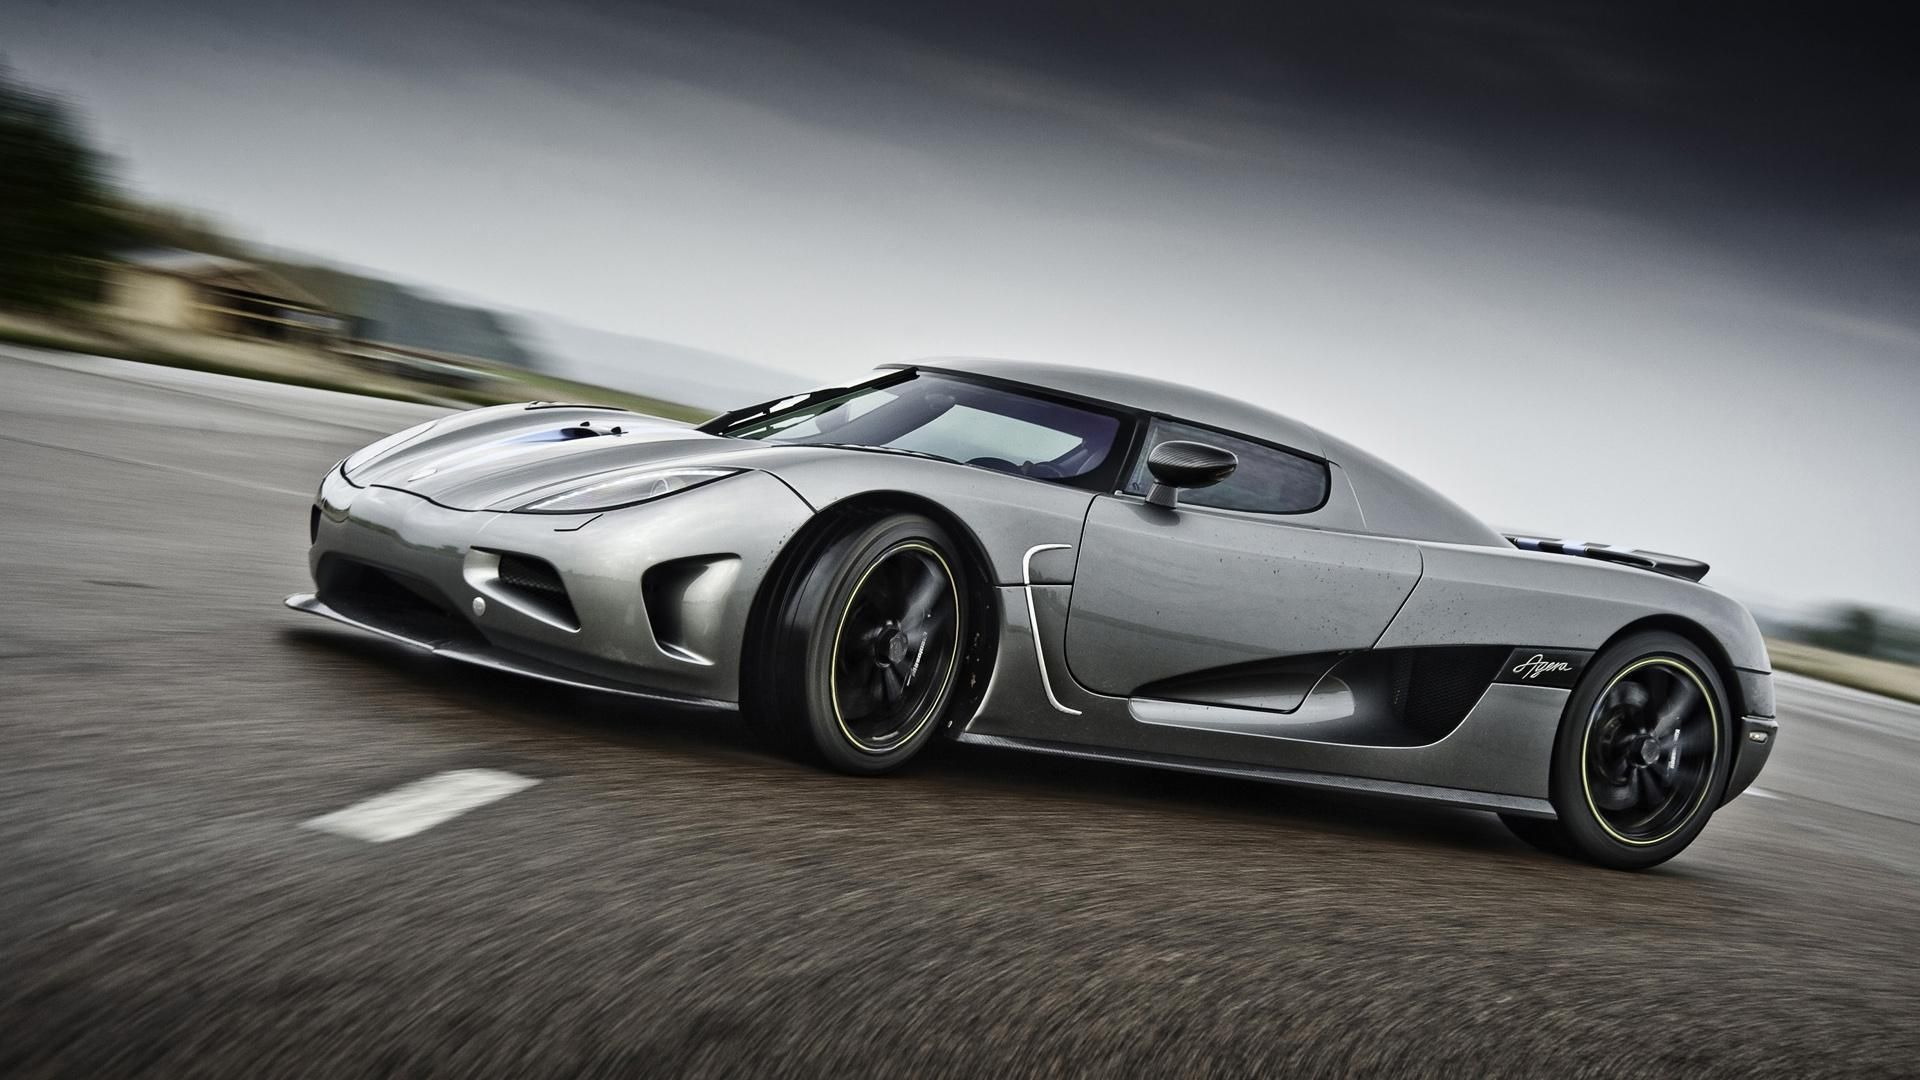 Amazing Koenigsegg Agera Side View | Cars Desktop HD Wallpaper